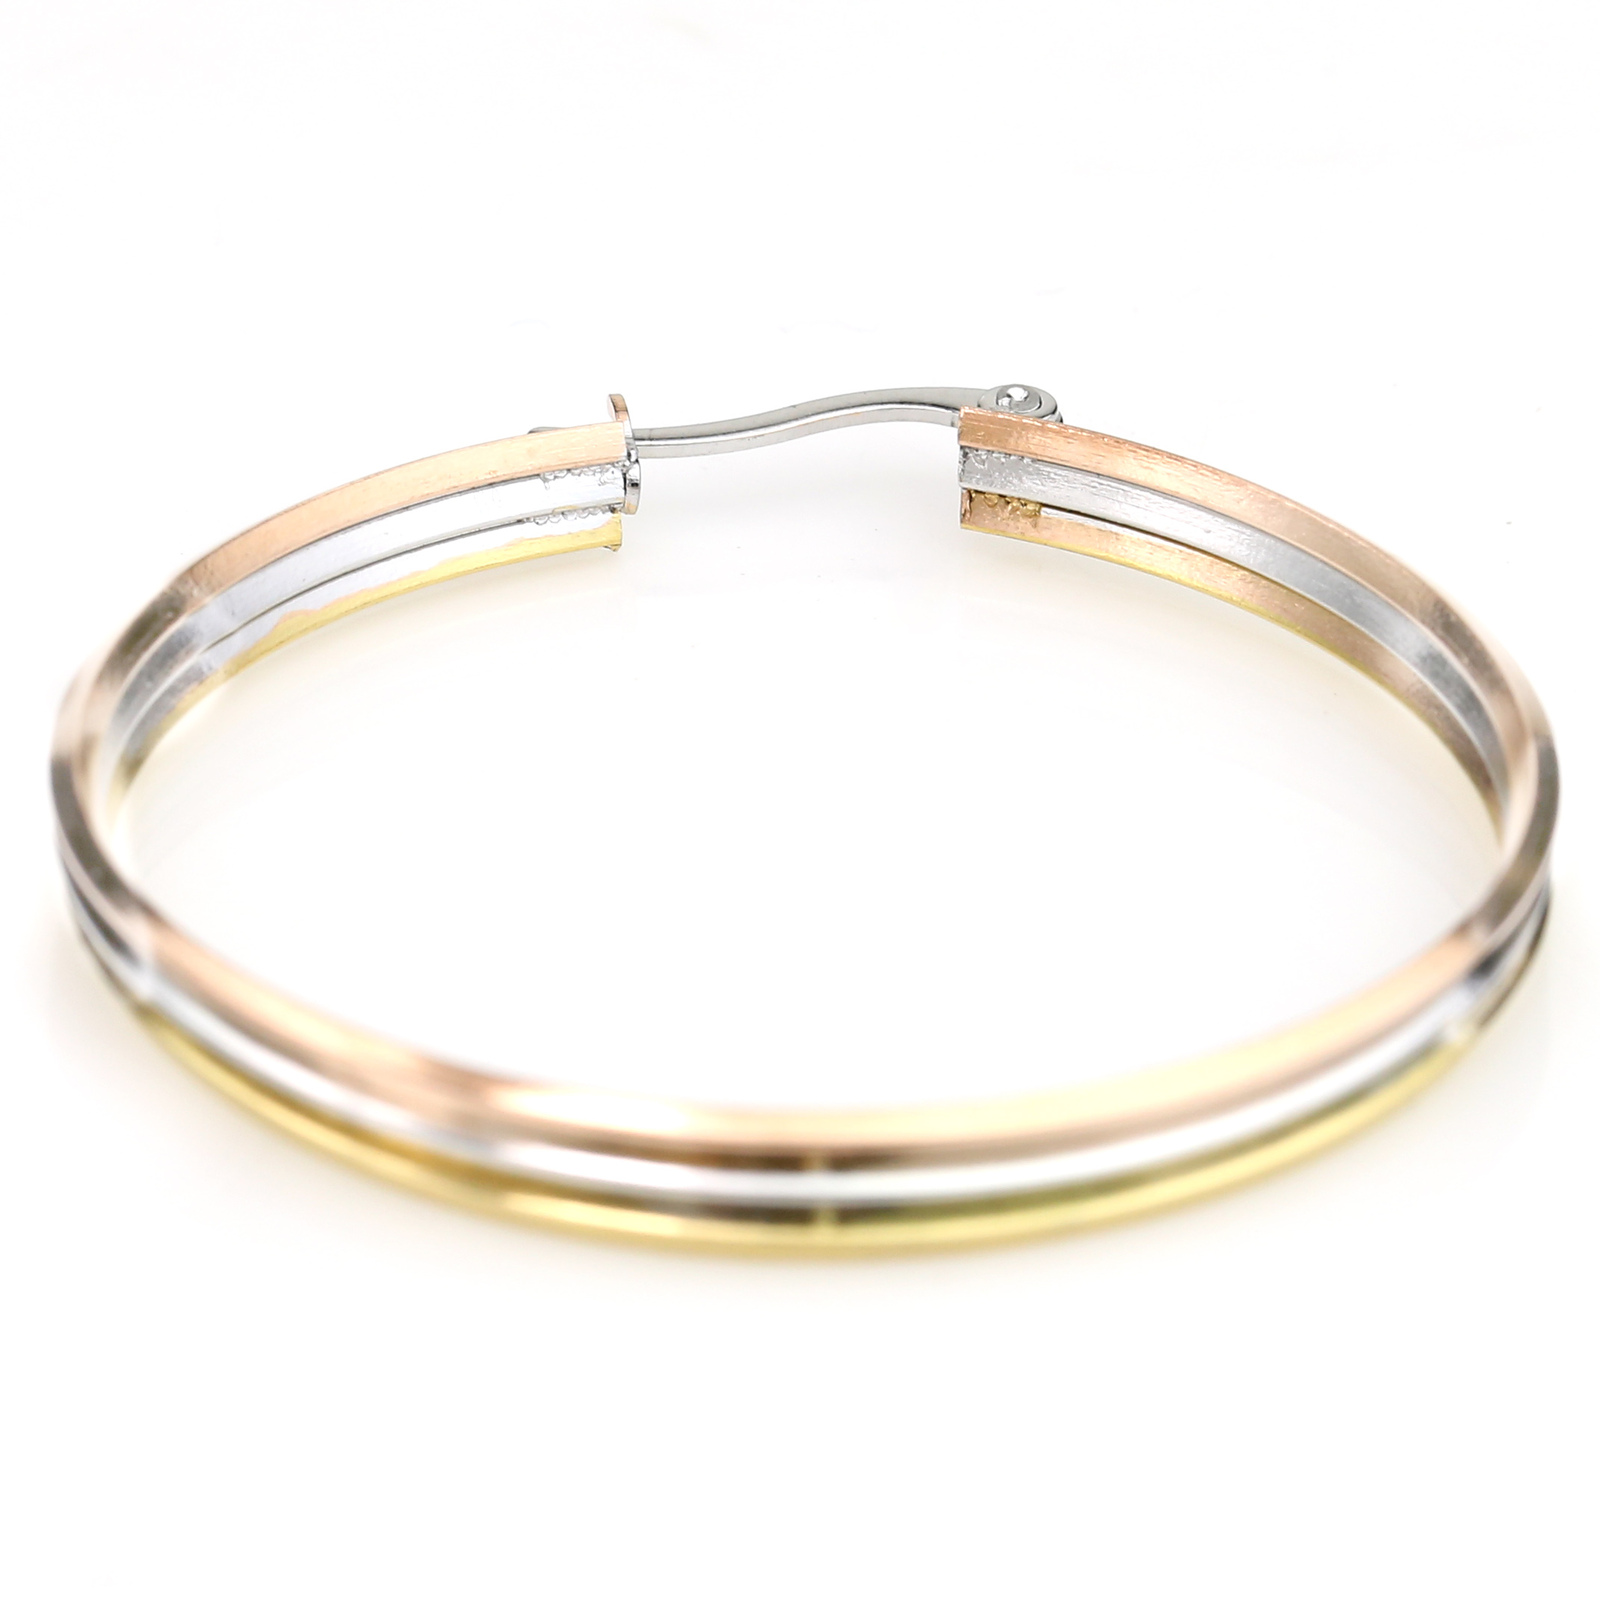 Stylish Tri-Color Silver, Gold & Rose Tone Hoop Earrings- United Elegance